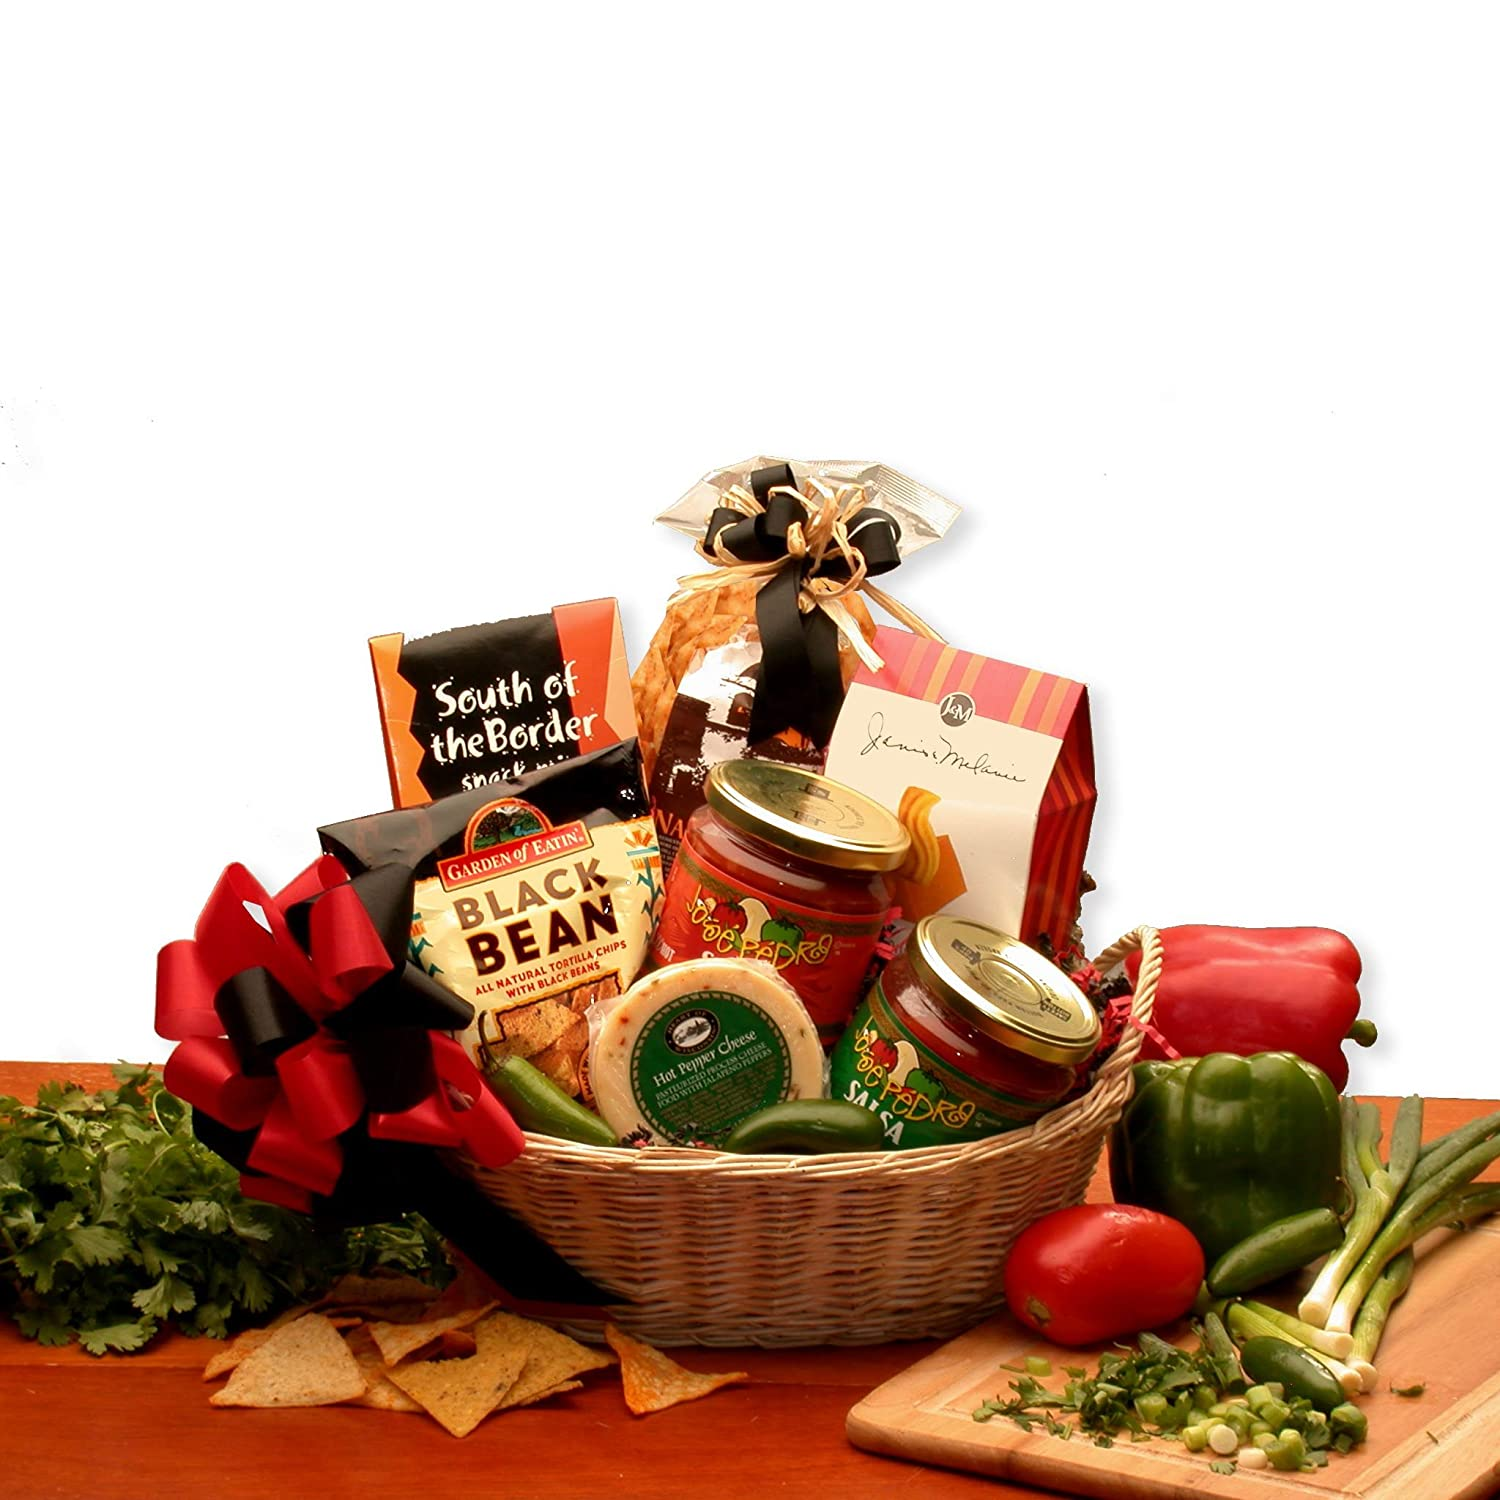 Amazon.com : Snack Gift Lets Spice it up! Salsa Gift Basket : Grocery & Gourmet Food